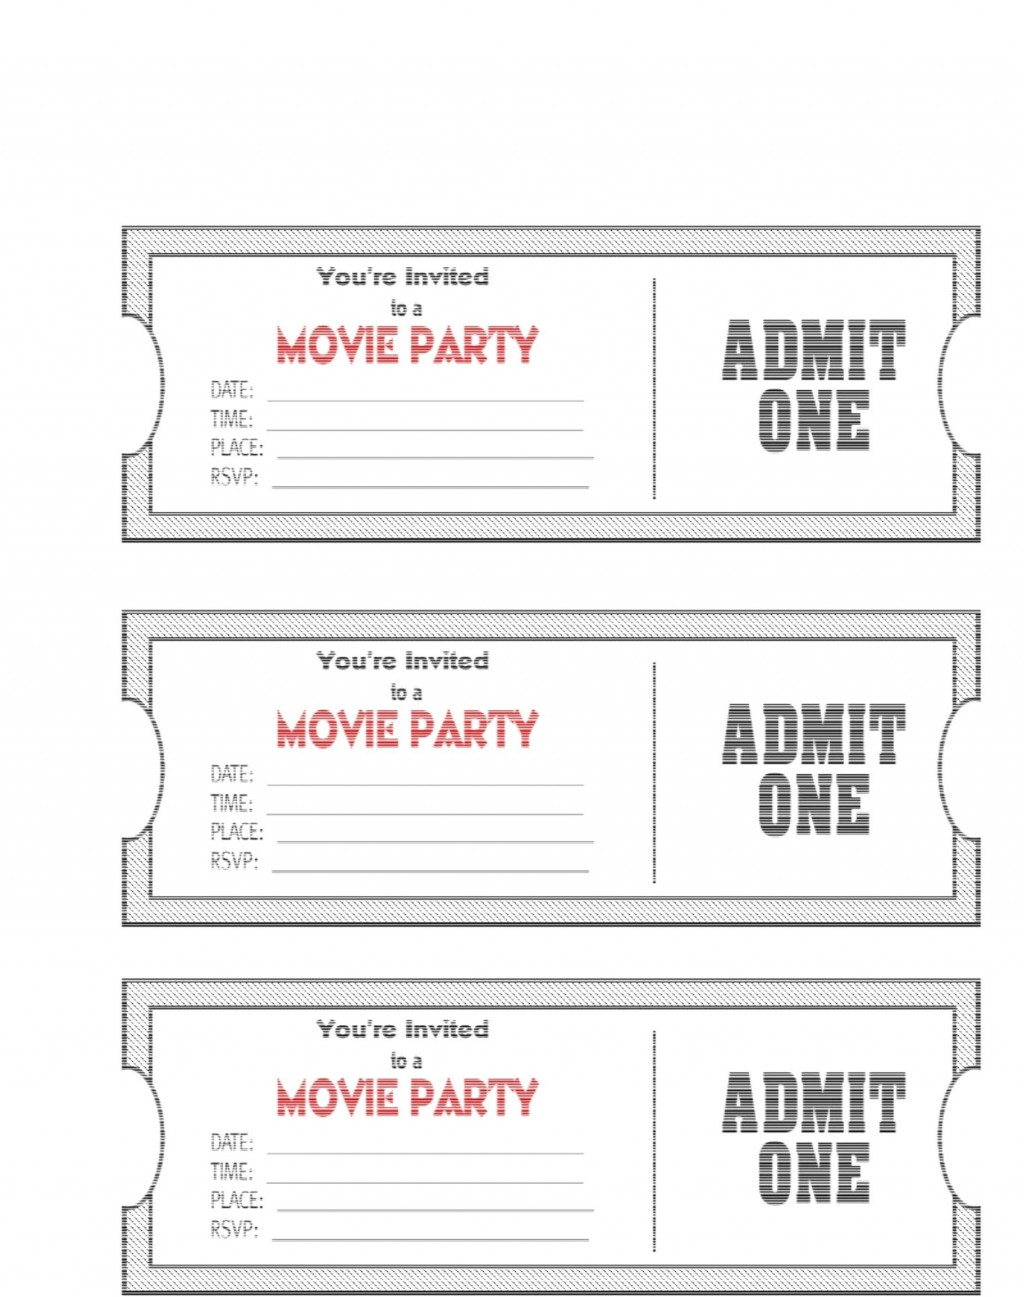 002 Sensational Free Printable Ticket Template High Def  Editable Airline Christma For GiftLarge